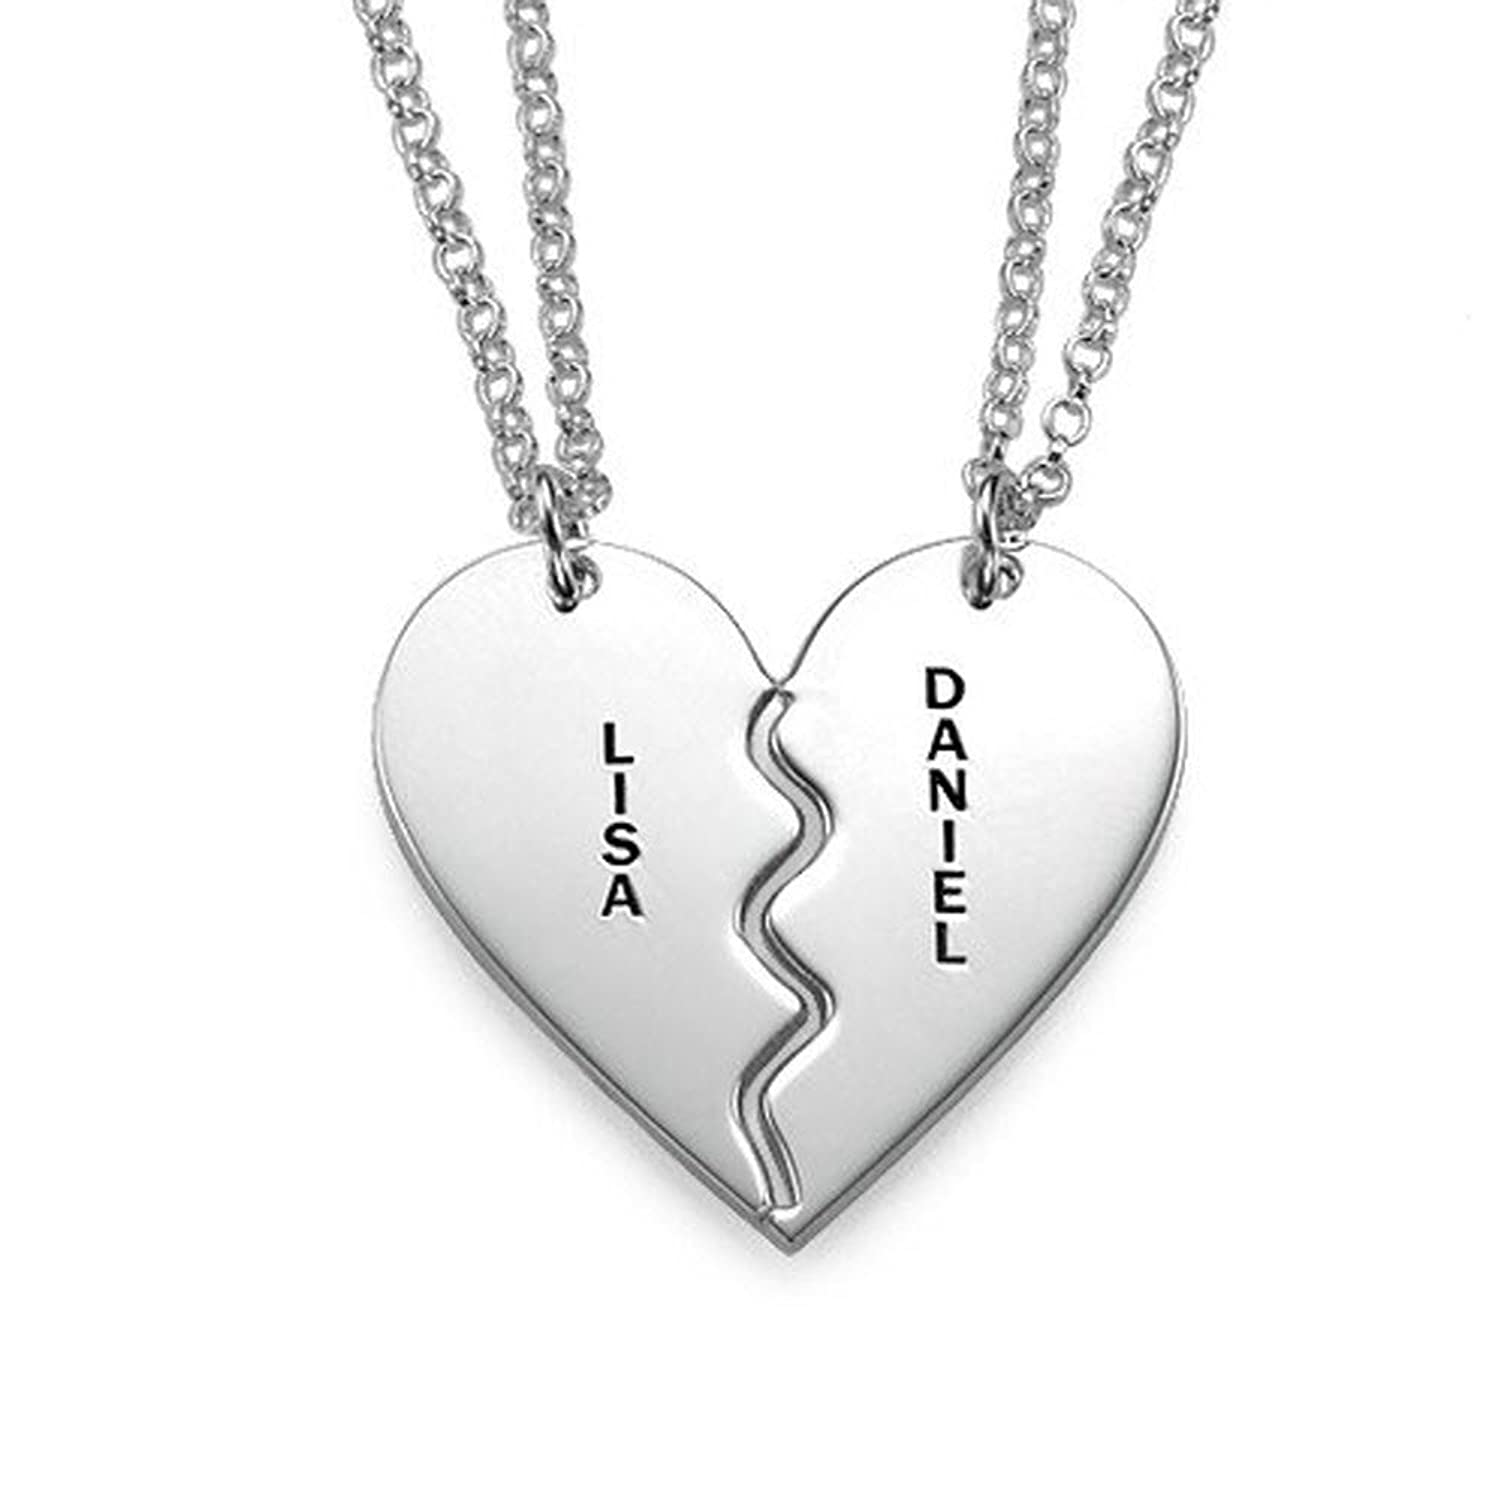 Custom Name Sterling Silver Keep Half Heart Necklaces Set for Two qmR5AIJlo